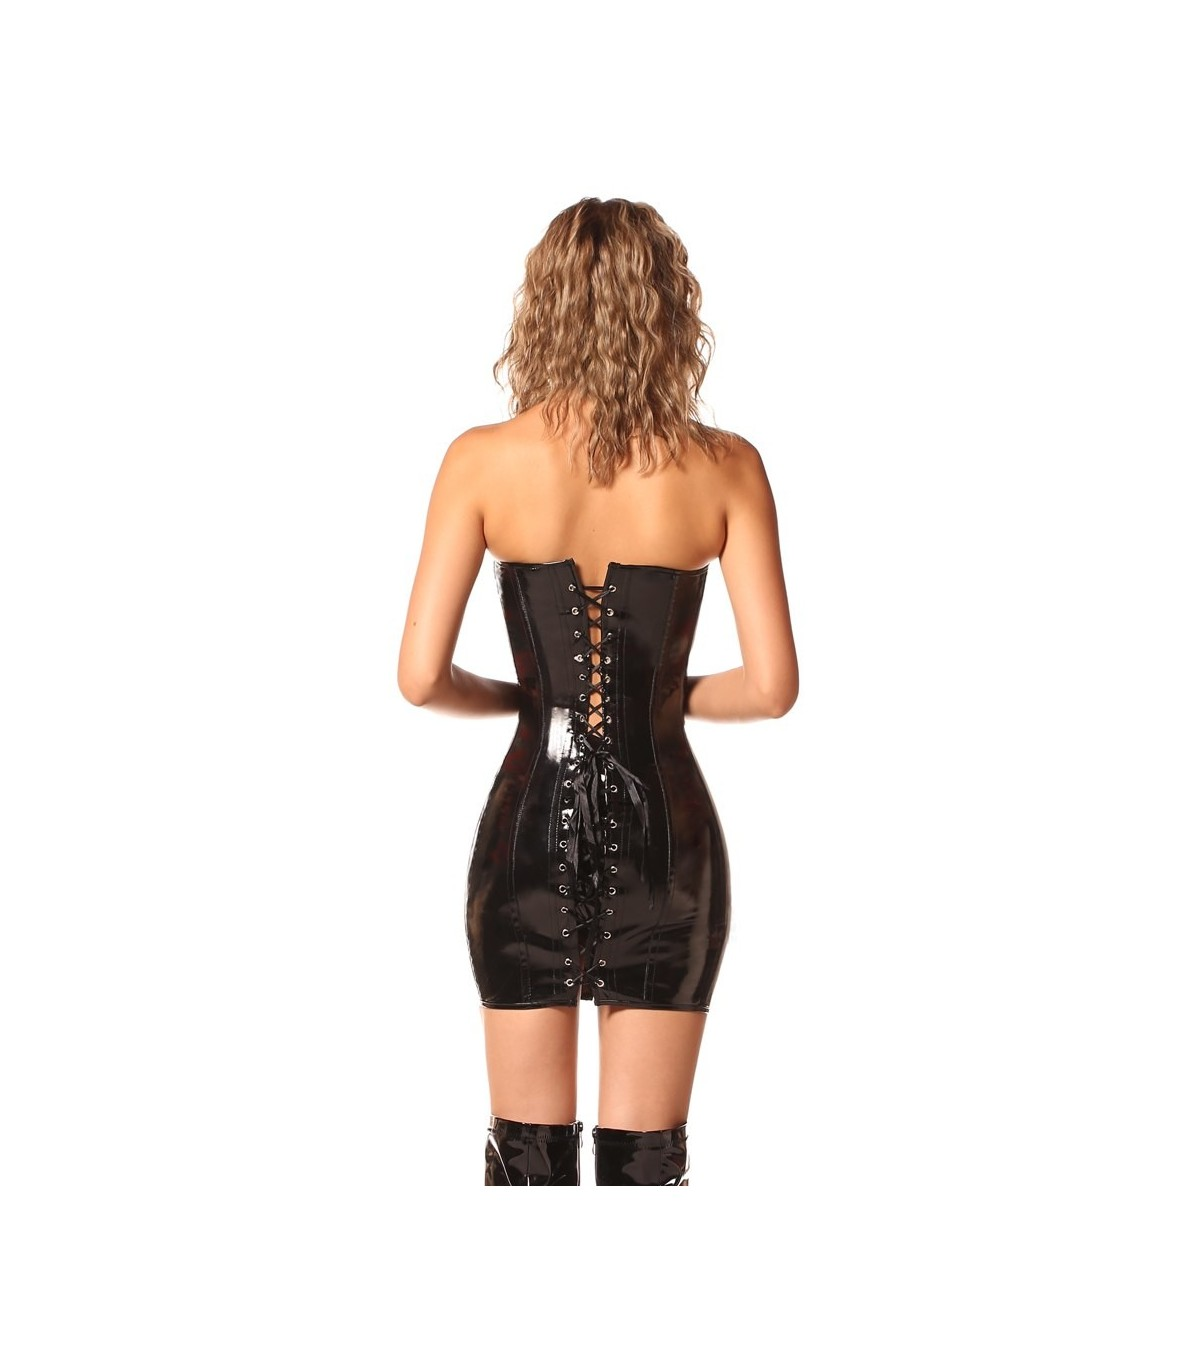 6619ba0730 Steampunk Wetlook Leather Long Corset